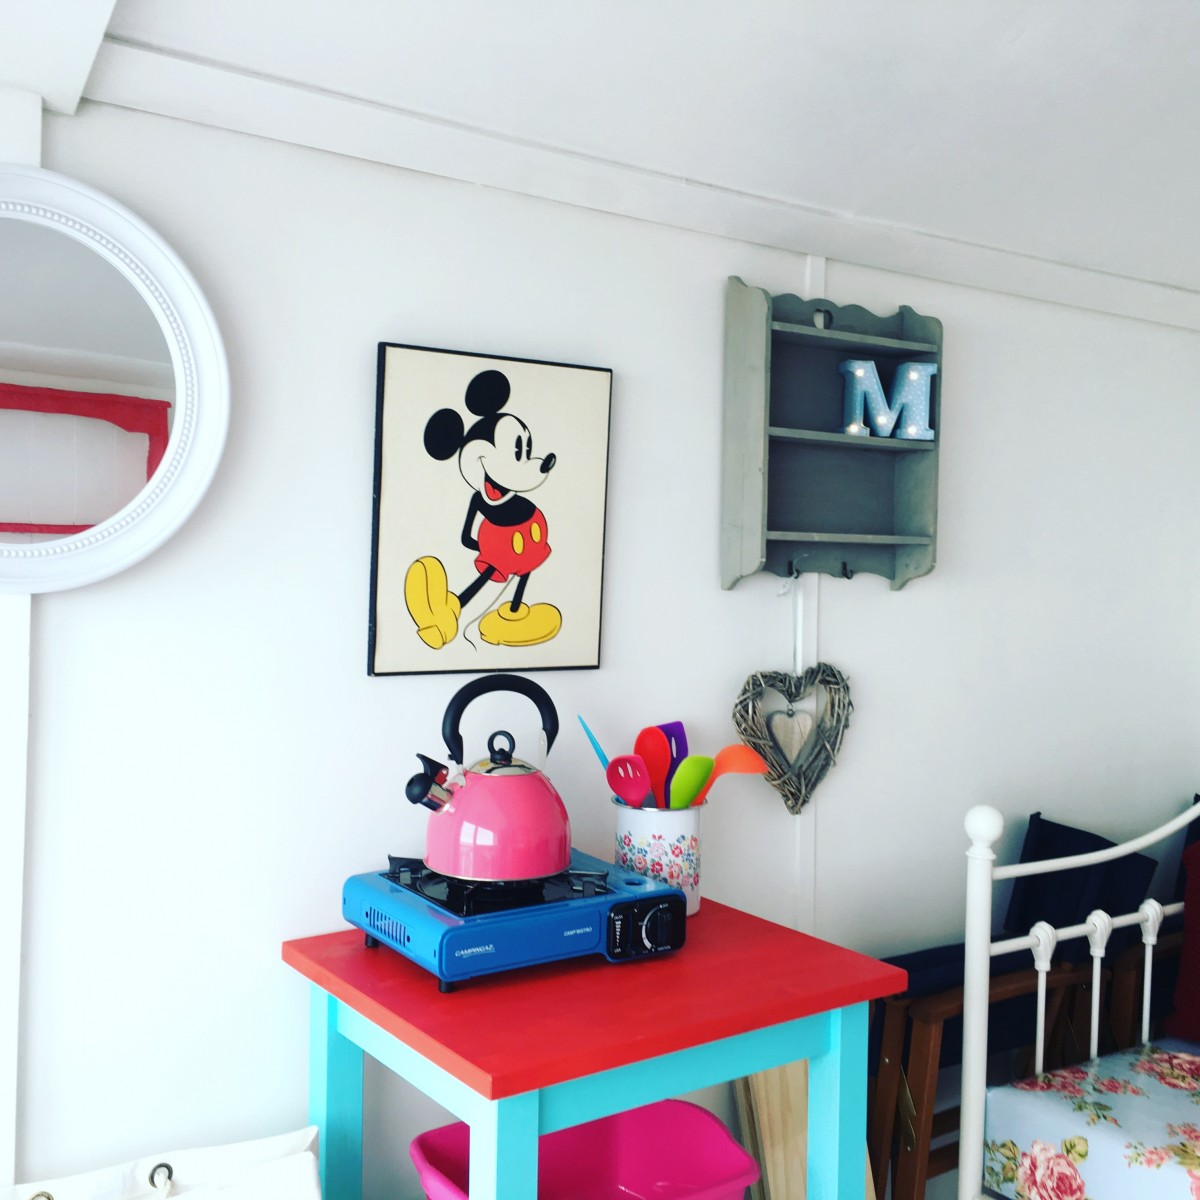 Mickey Mouse Beach Hut Hire EAstcliff Walton on the Naze Essesx